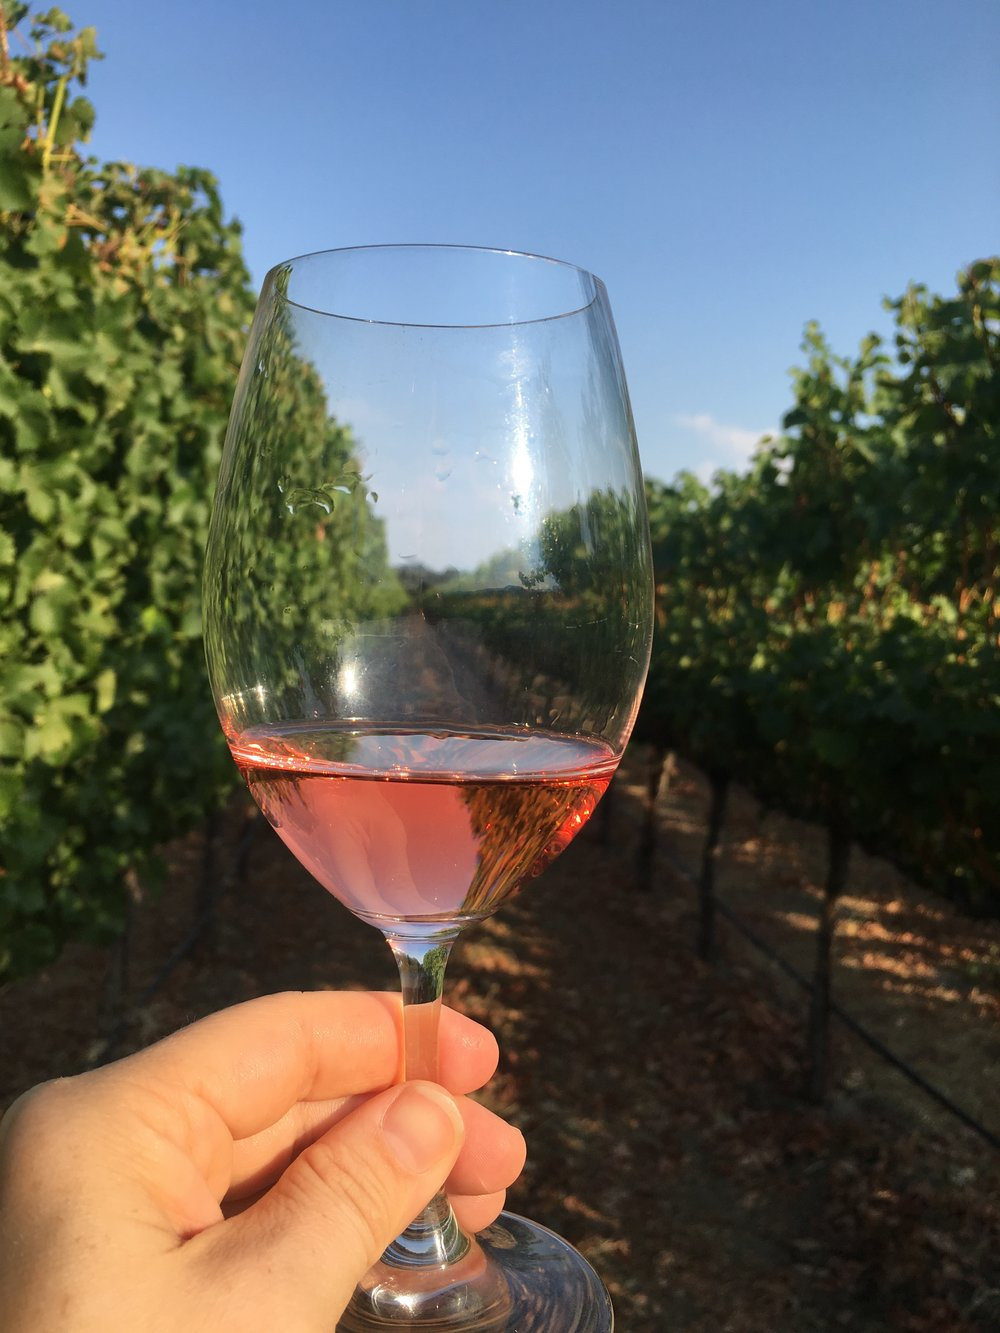 Gamble Family Vineyards and a glass of rose.